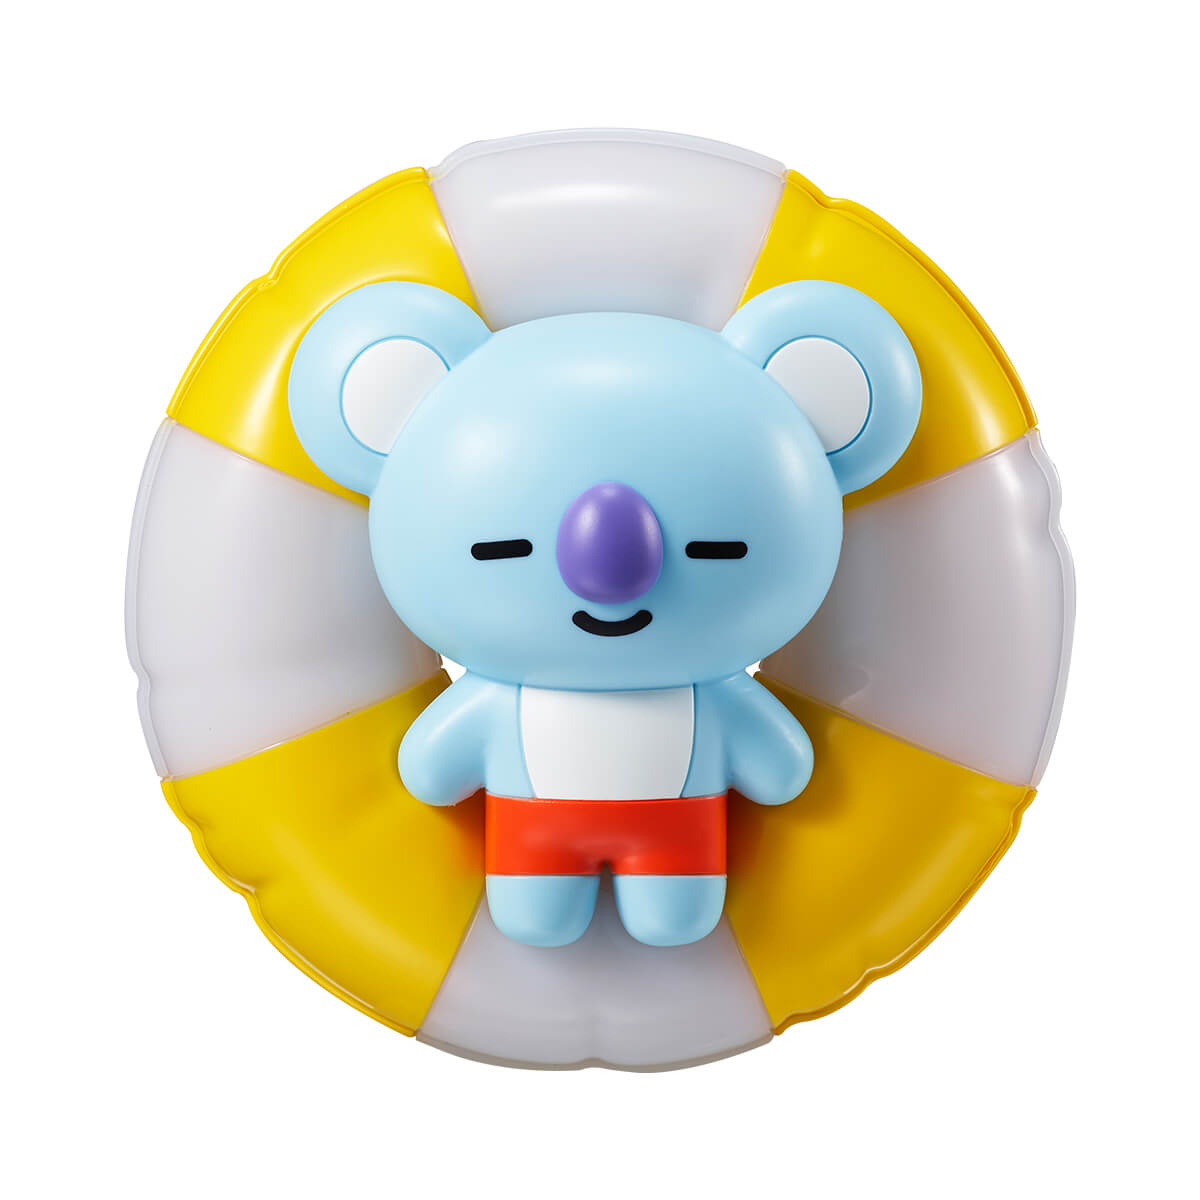 BT21 KOYA Interactive Toy Action Figure